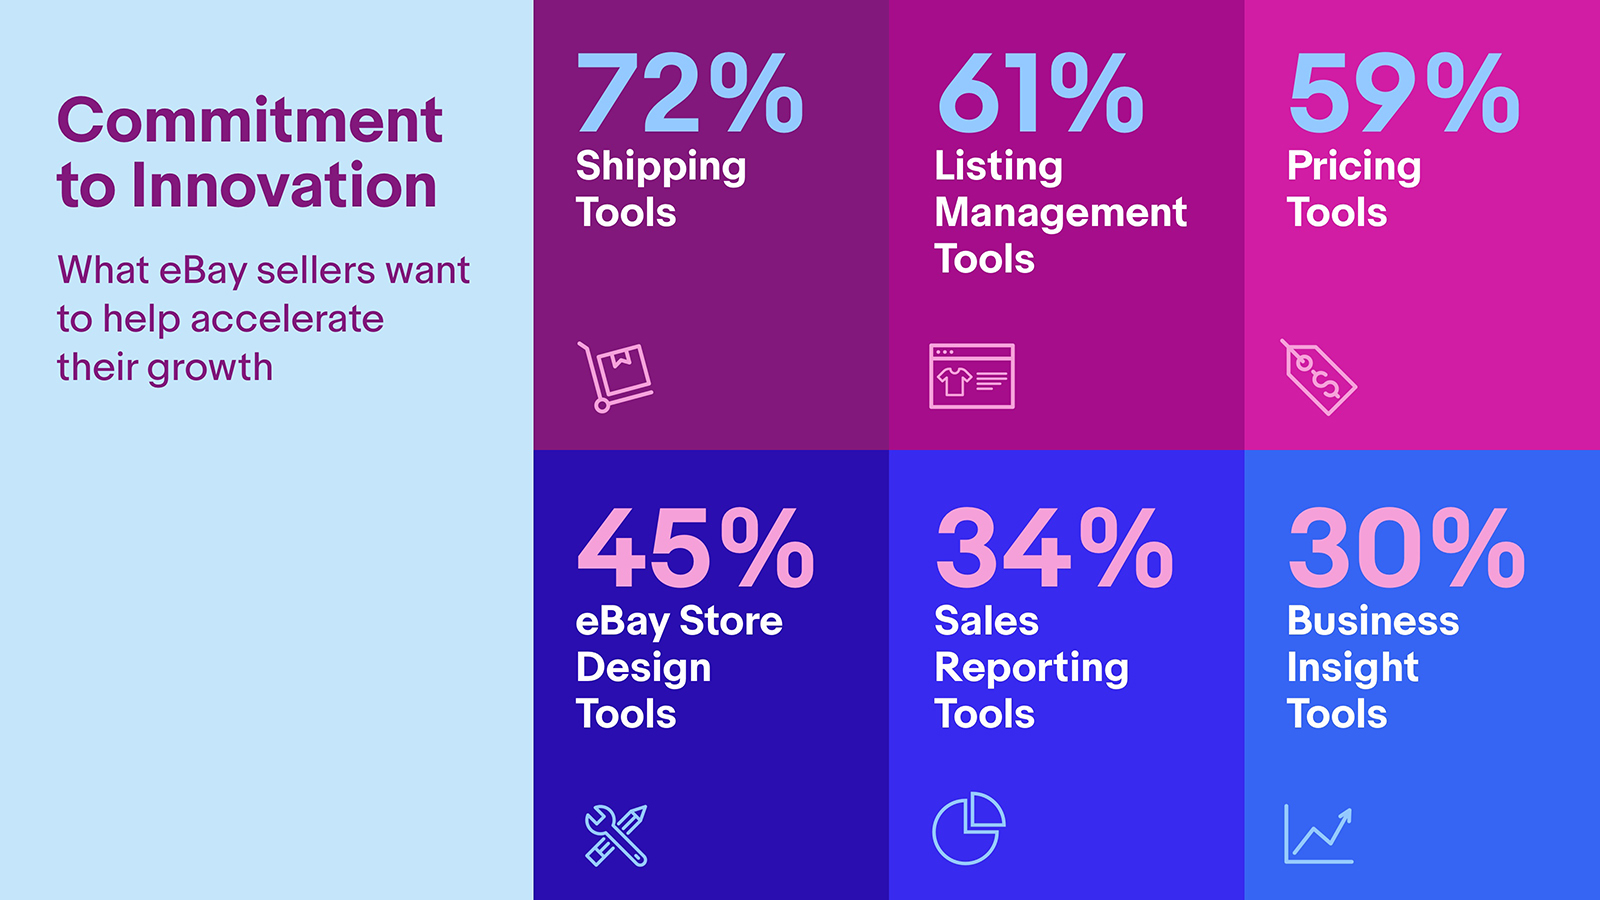 What eBay sellers want to help accelerate their growth: Shipping Tools (72%), Listing Management Tools (61%), Pricing Tools (59%), eBay Store Design Tools (45%), Sales Reporting Tools (34%) and Business Insight Tools (30%).